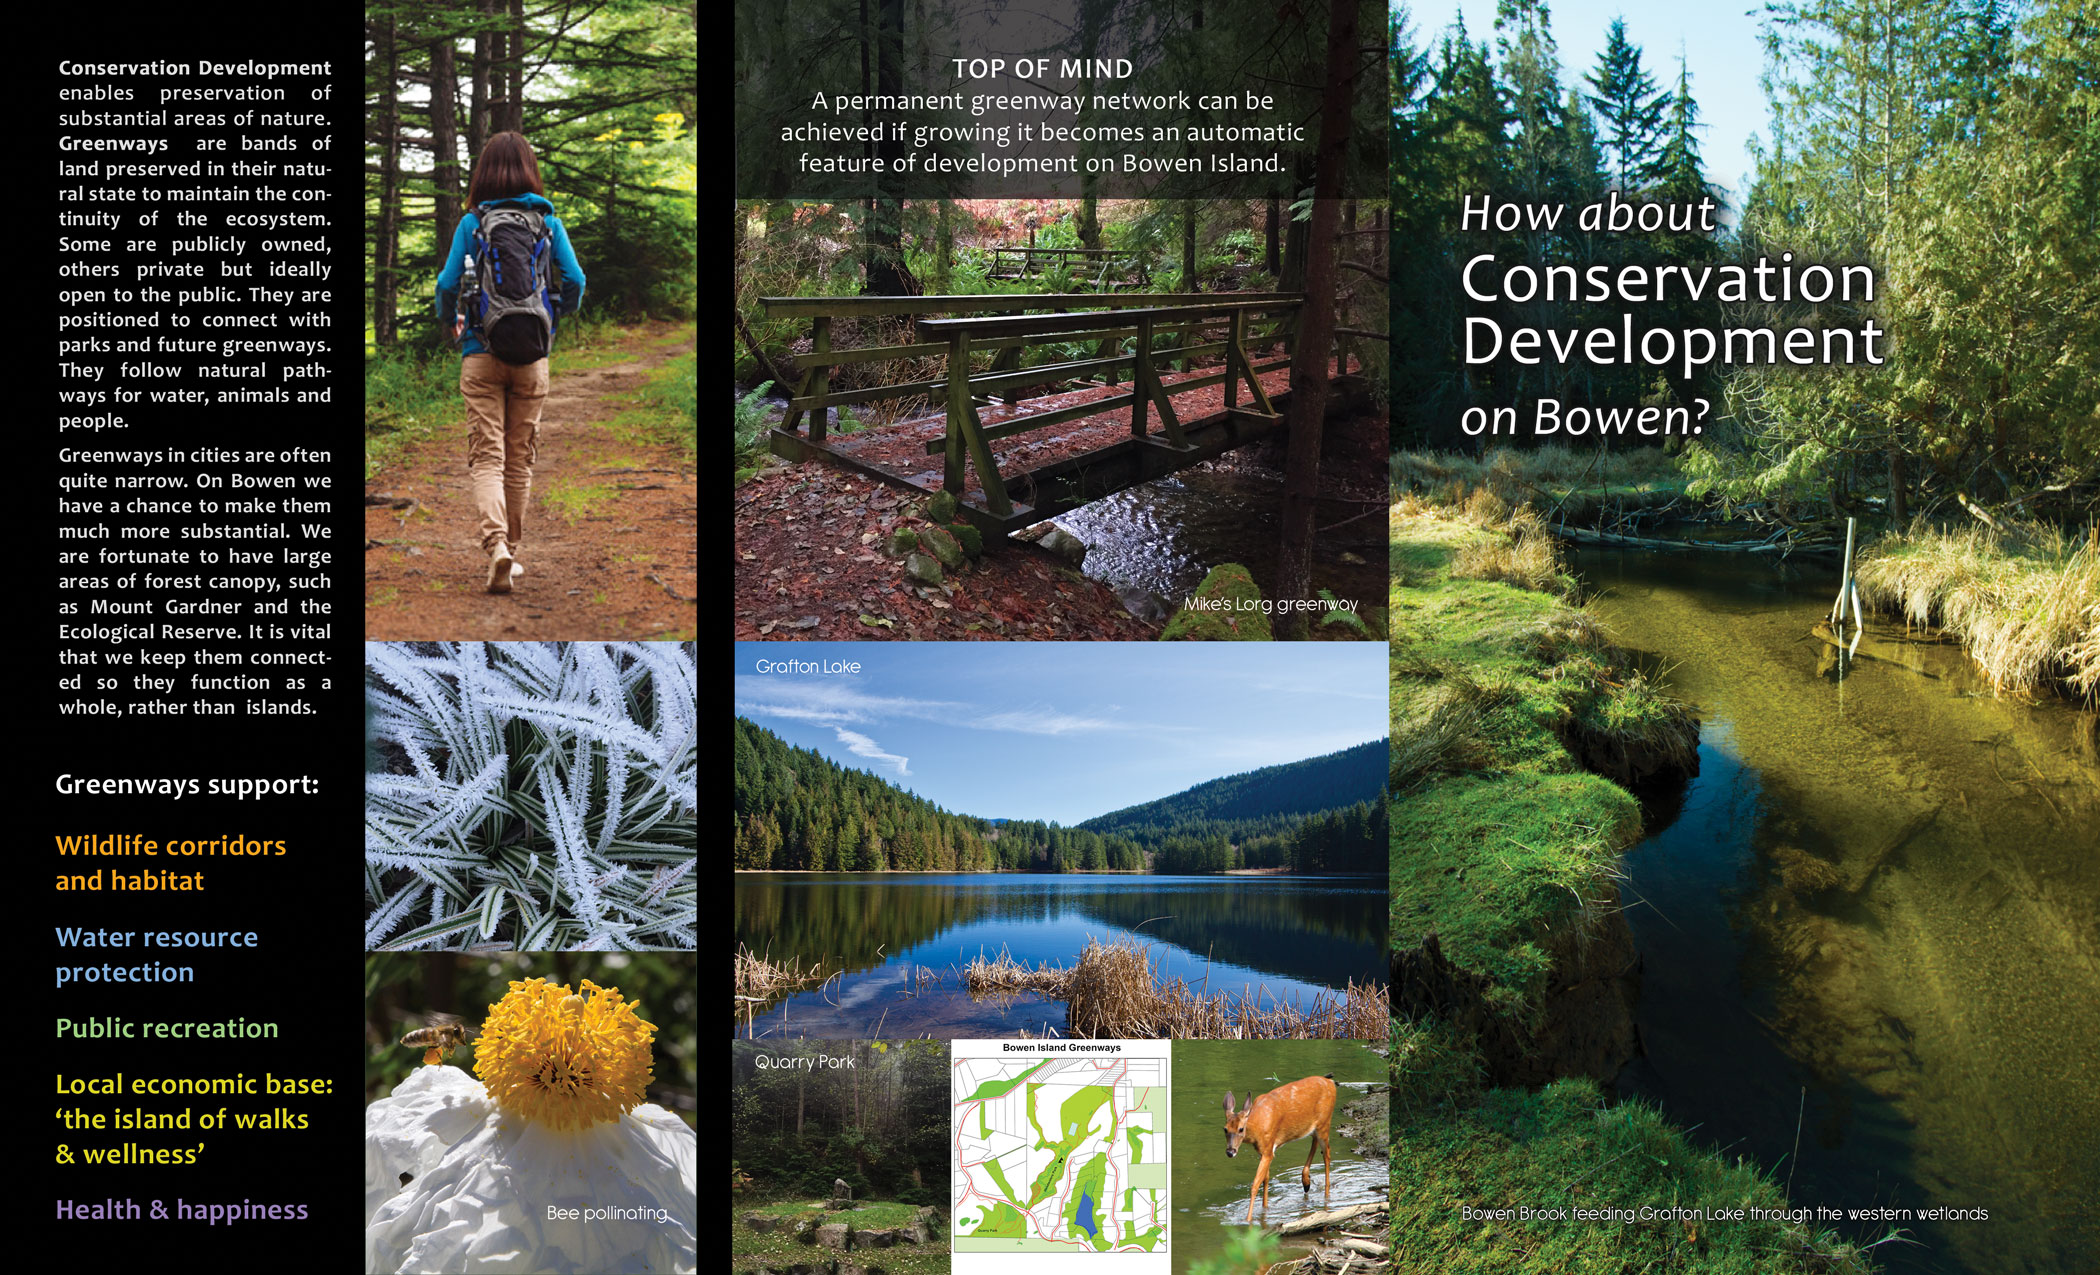 Outside of brochure featuring images of bowen island greenways.